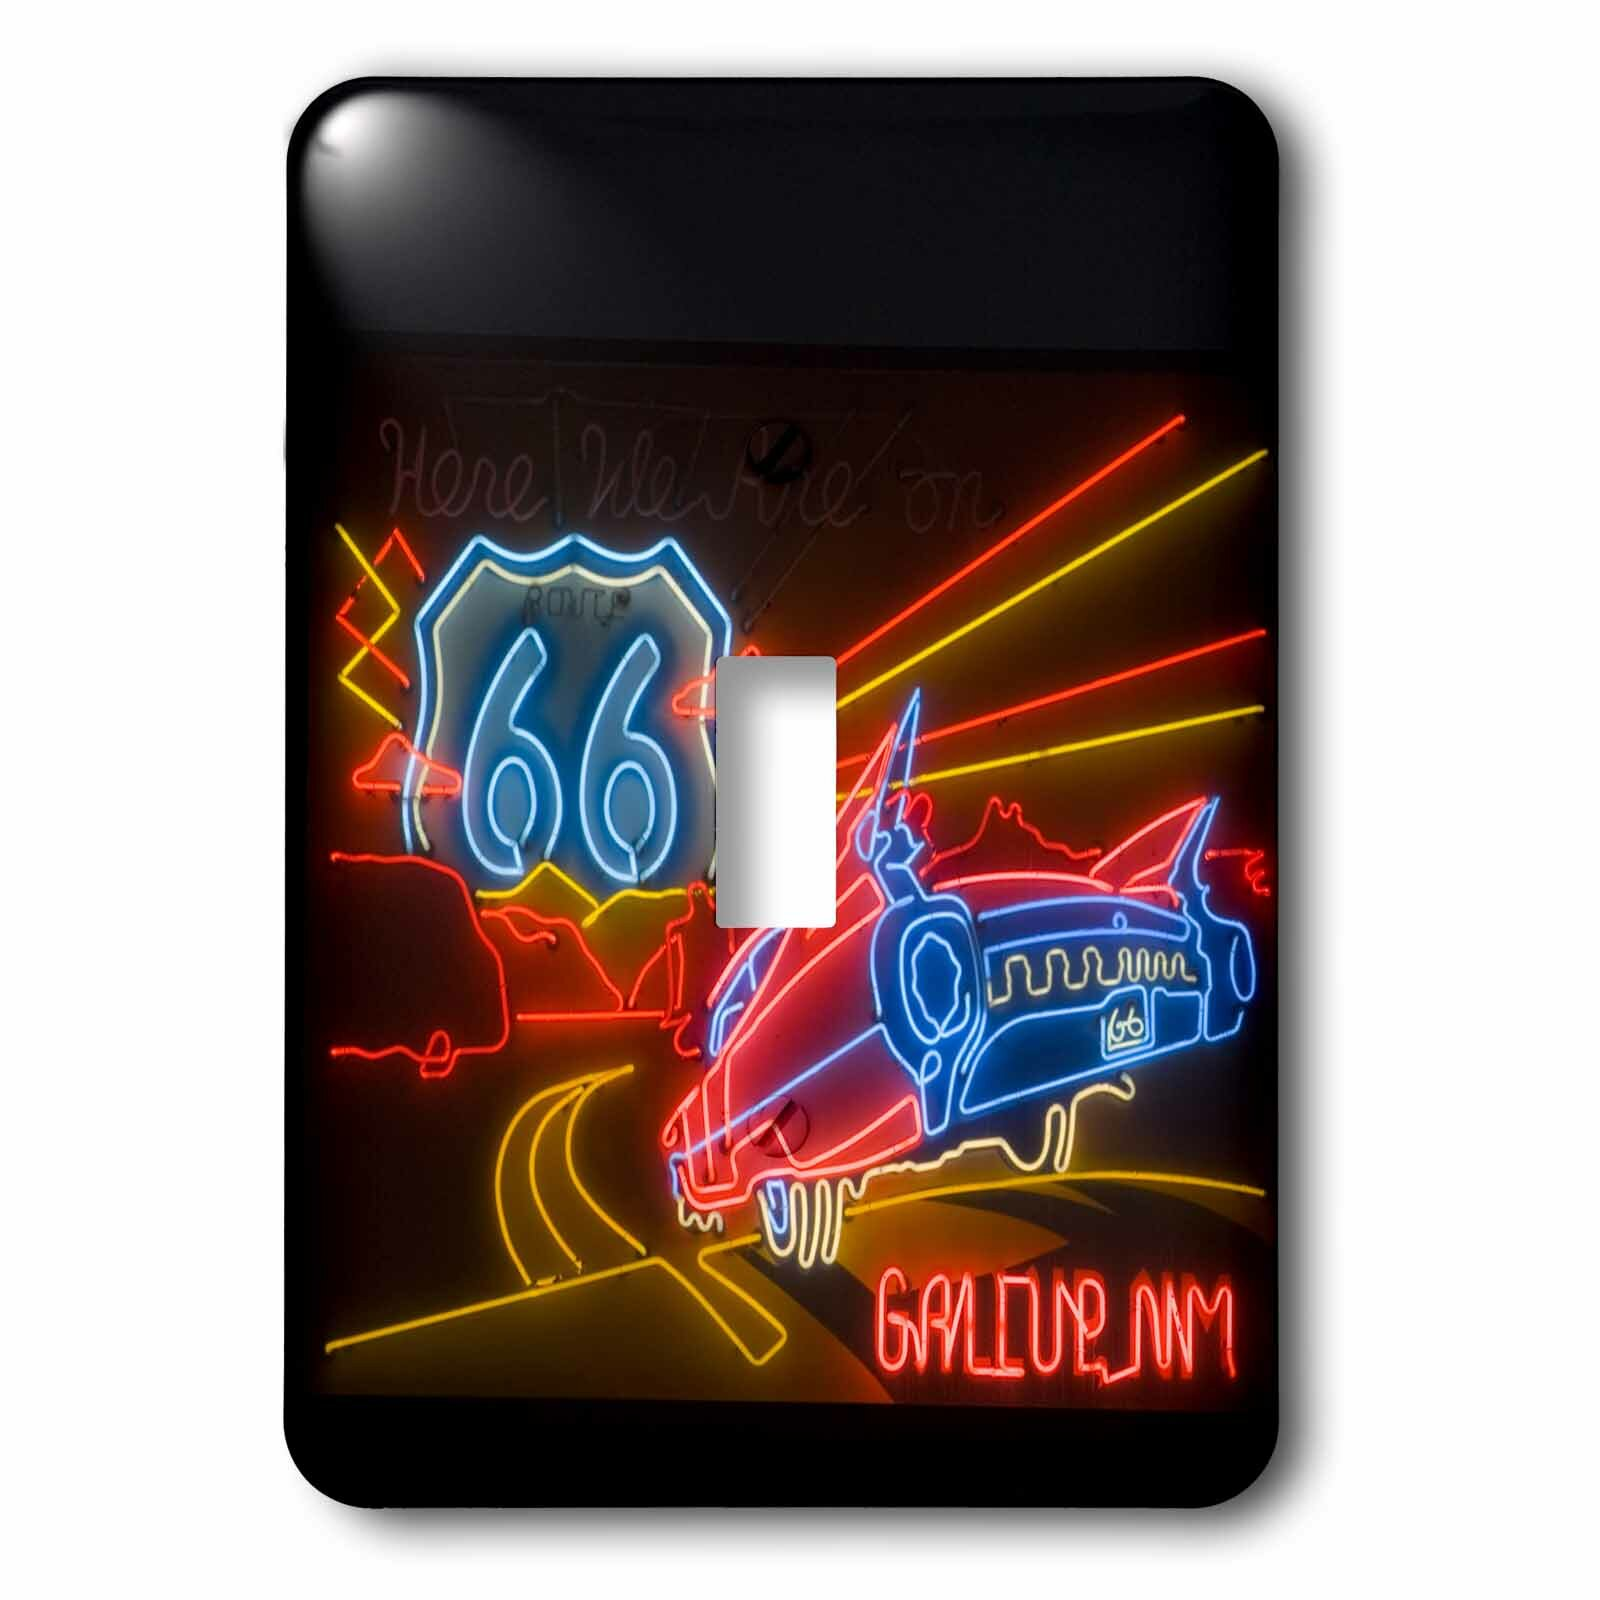 3drose Route 66 Neon Sign Gallup Chamber Of Commerce 1 Gang Toggle Light Switch Wall Plate Wayfair